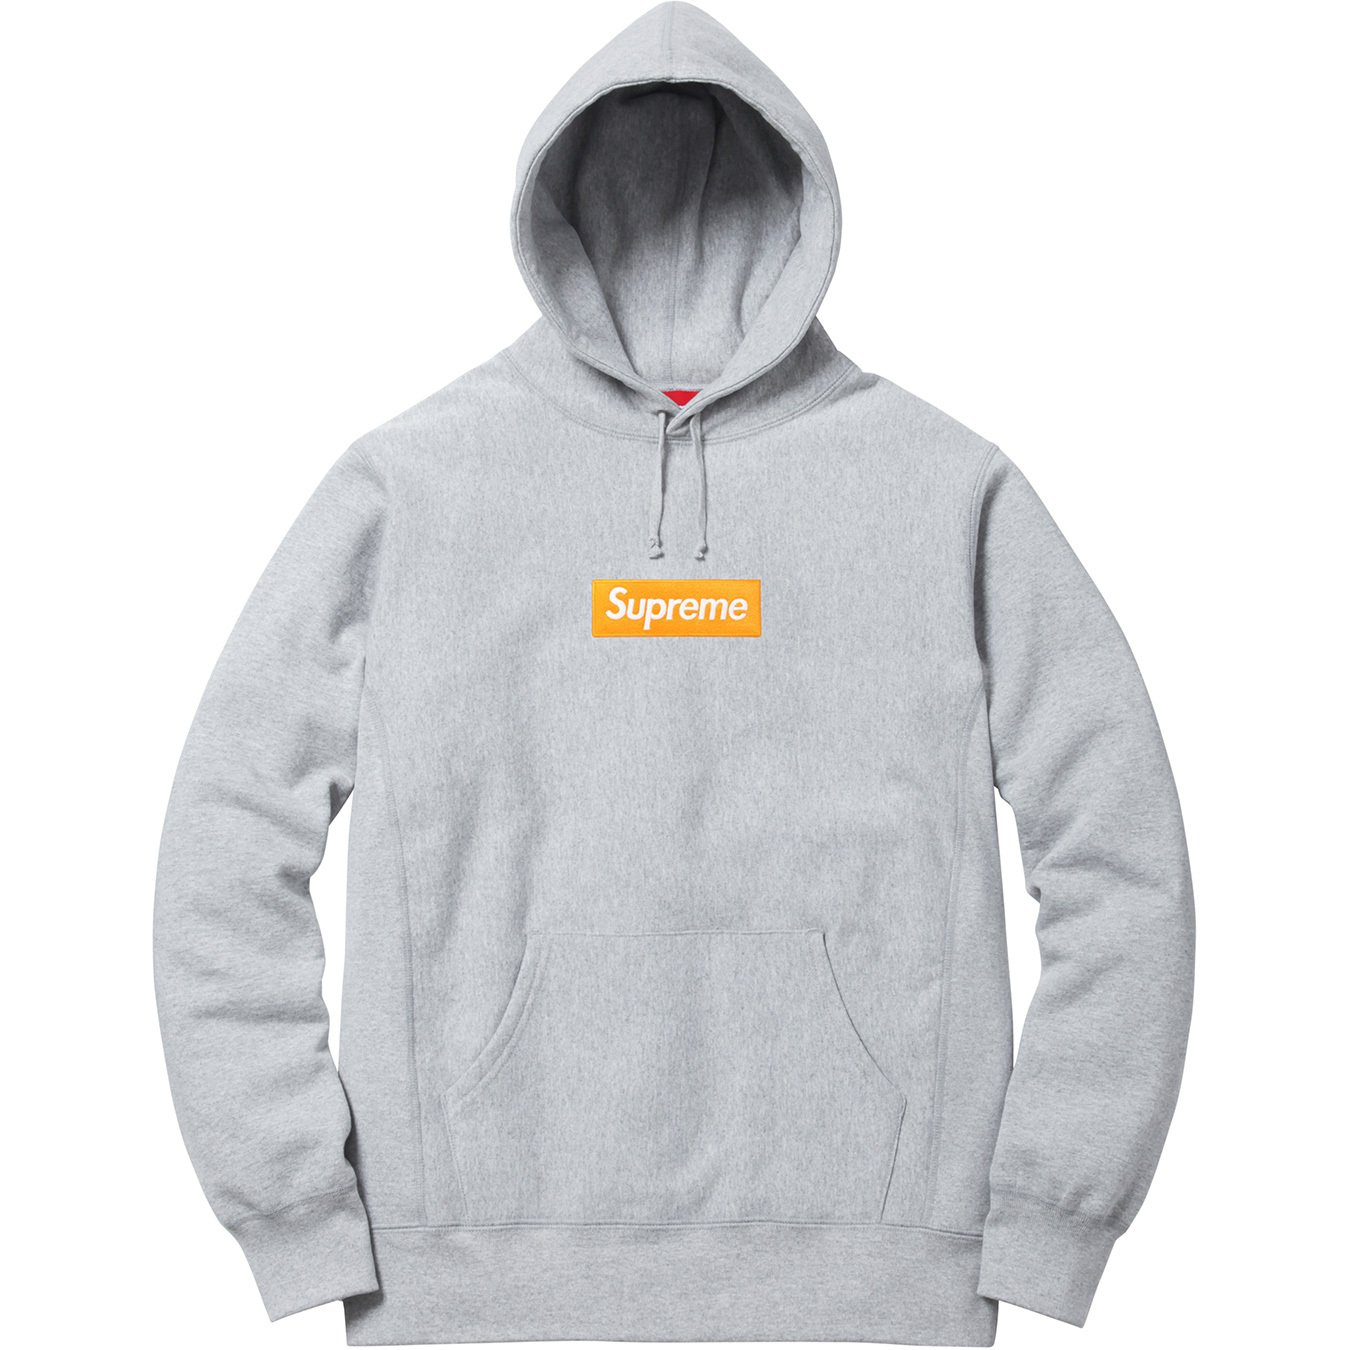 supreme,2017aw,fall,winter,box,logo,hooded,sweatshirt